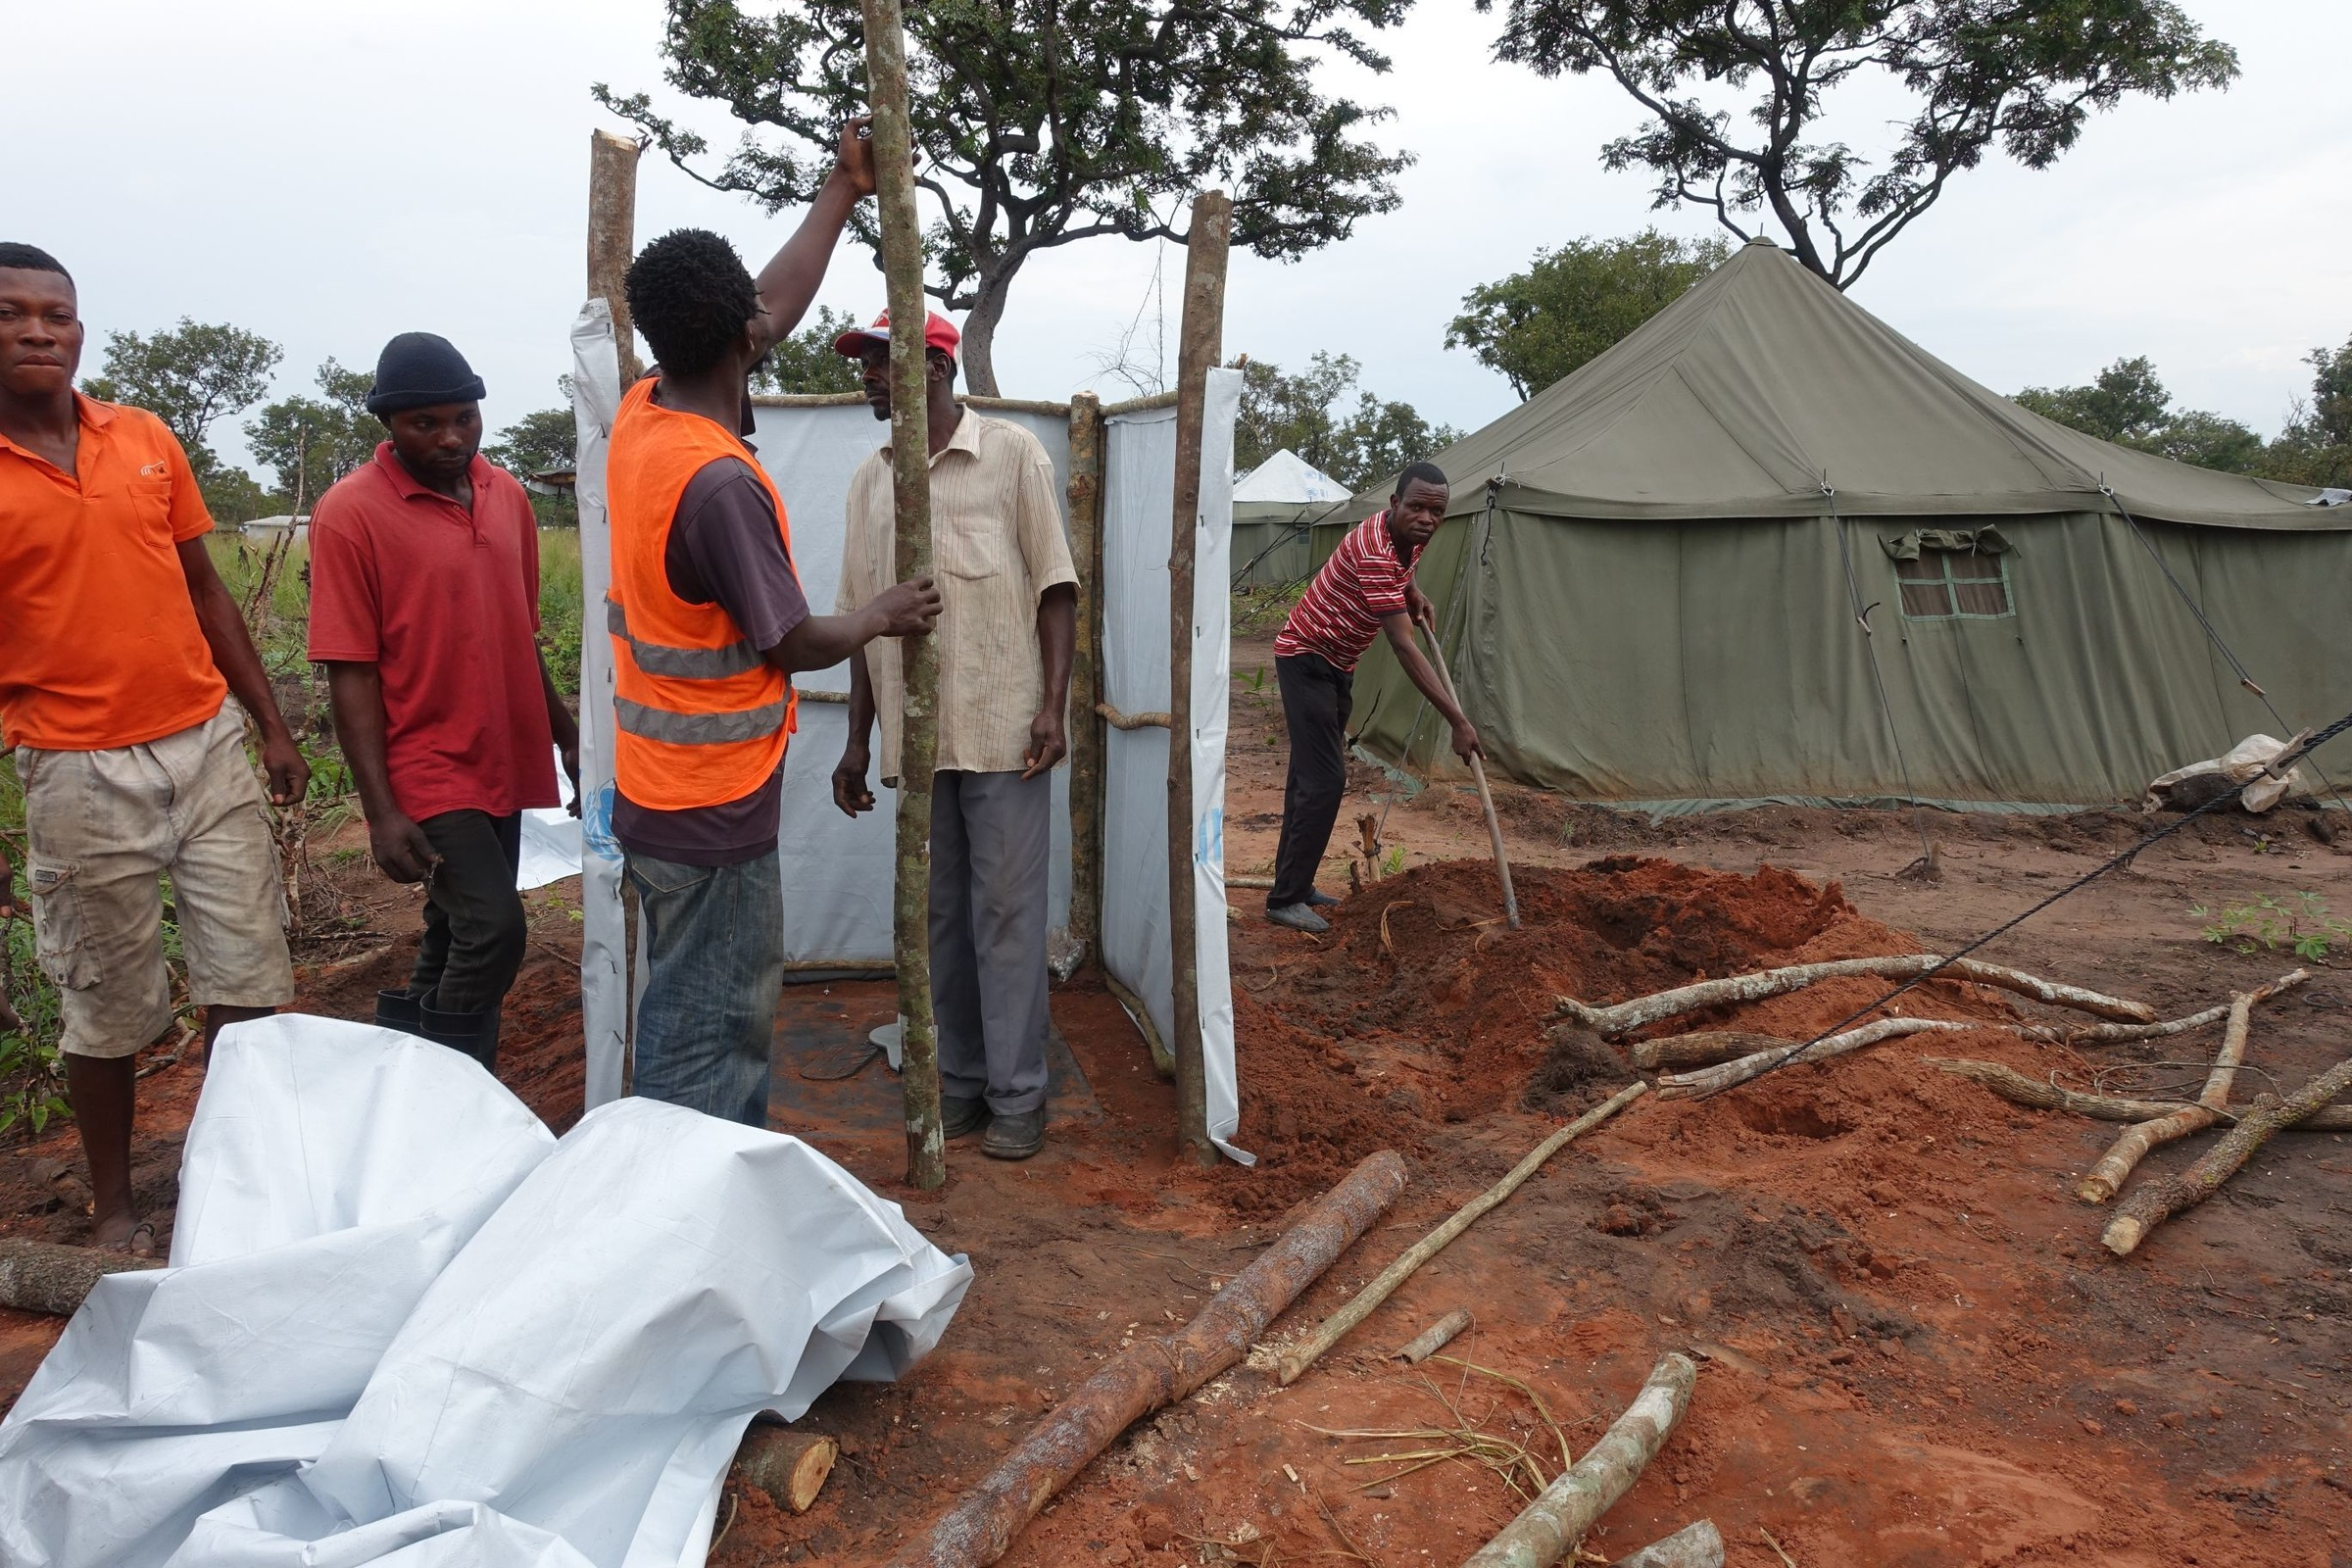 Helping refugees in Angola